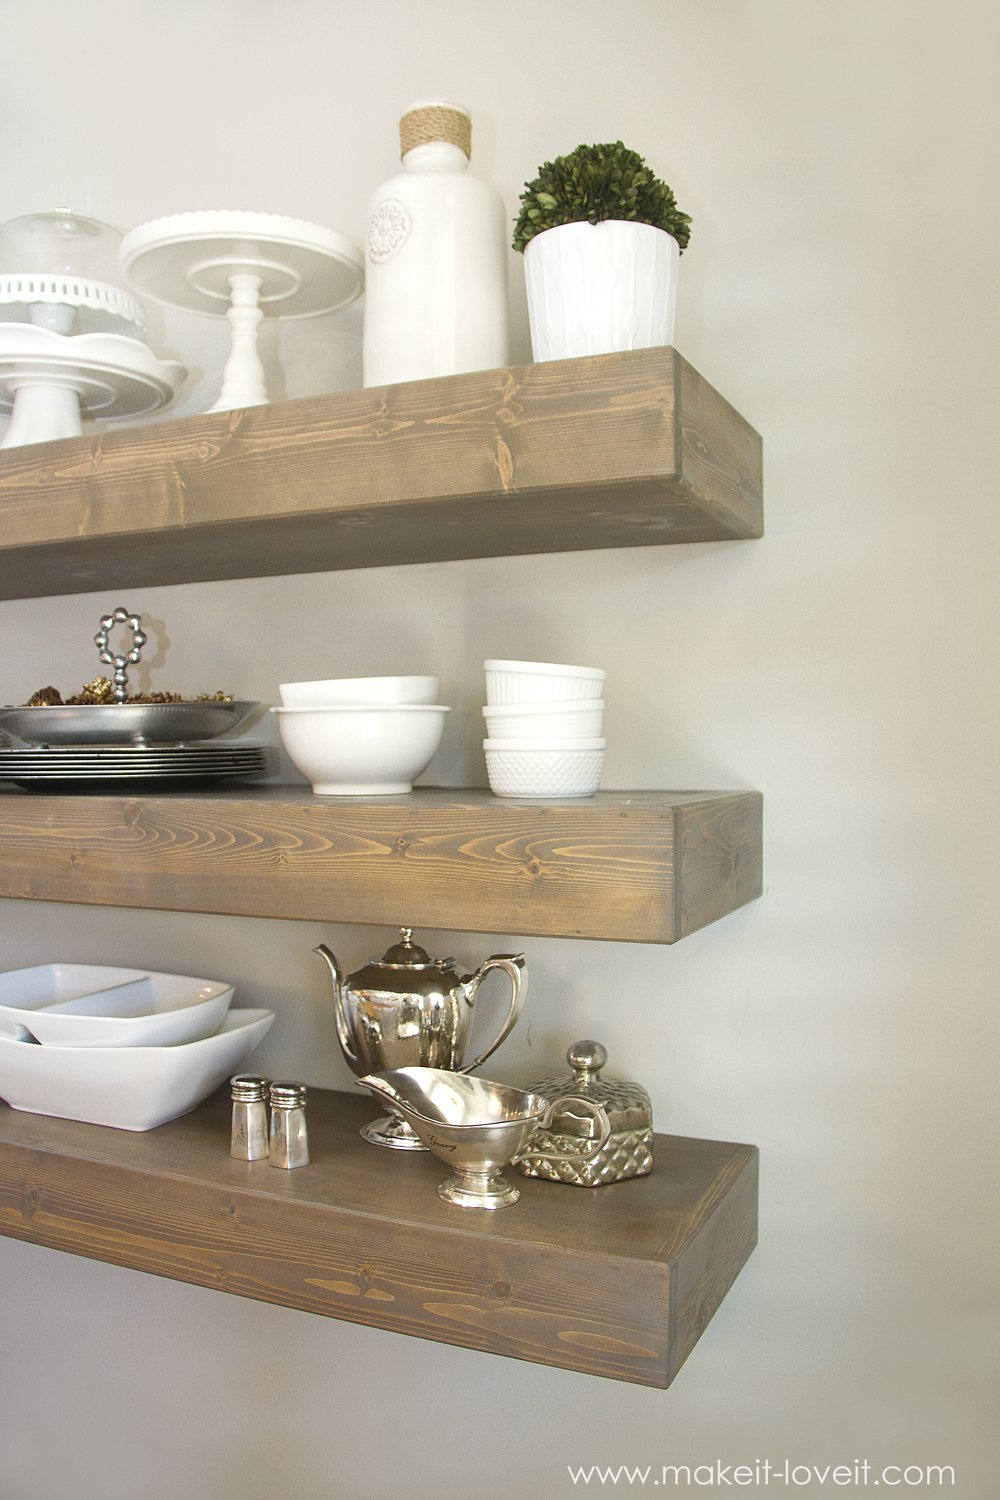 Fabulous DIY Floating Shelves to Make! - landeelu.com